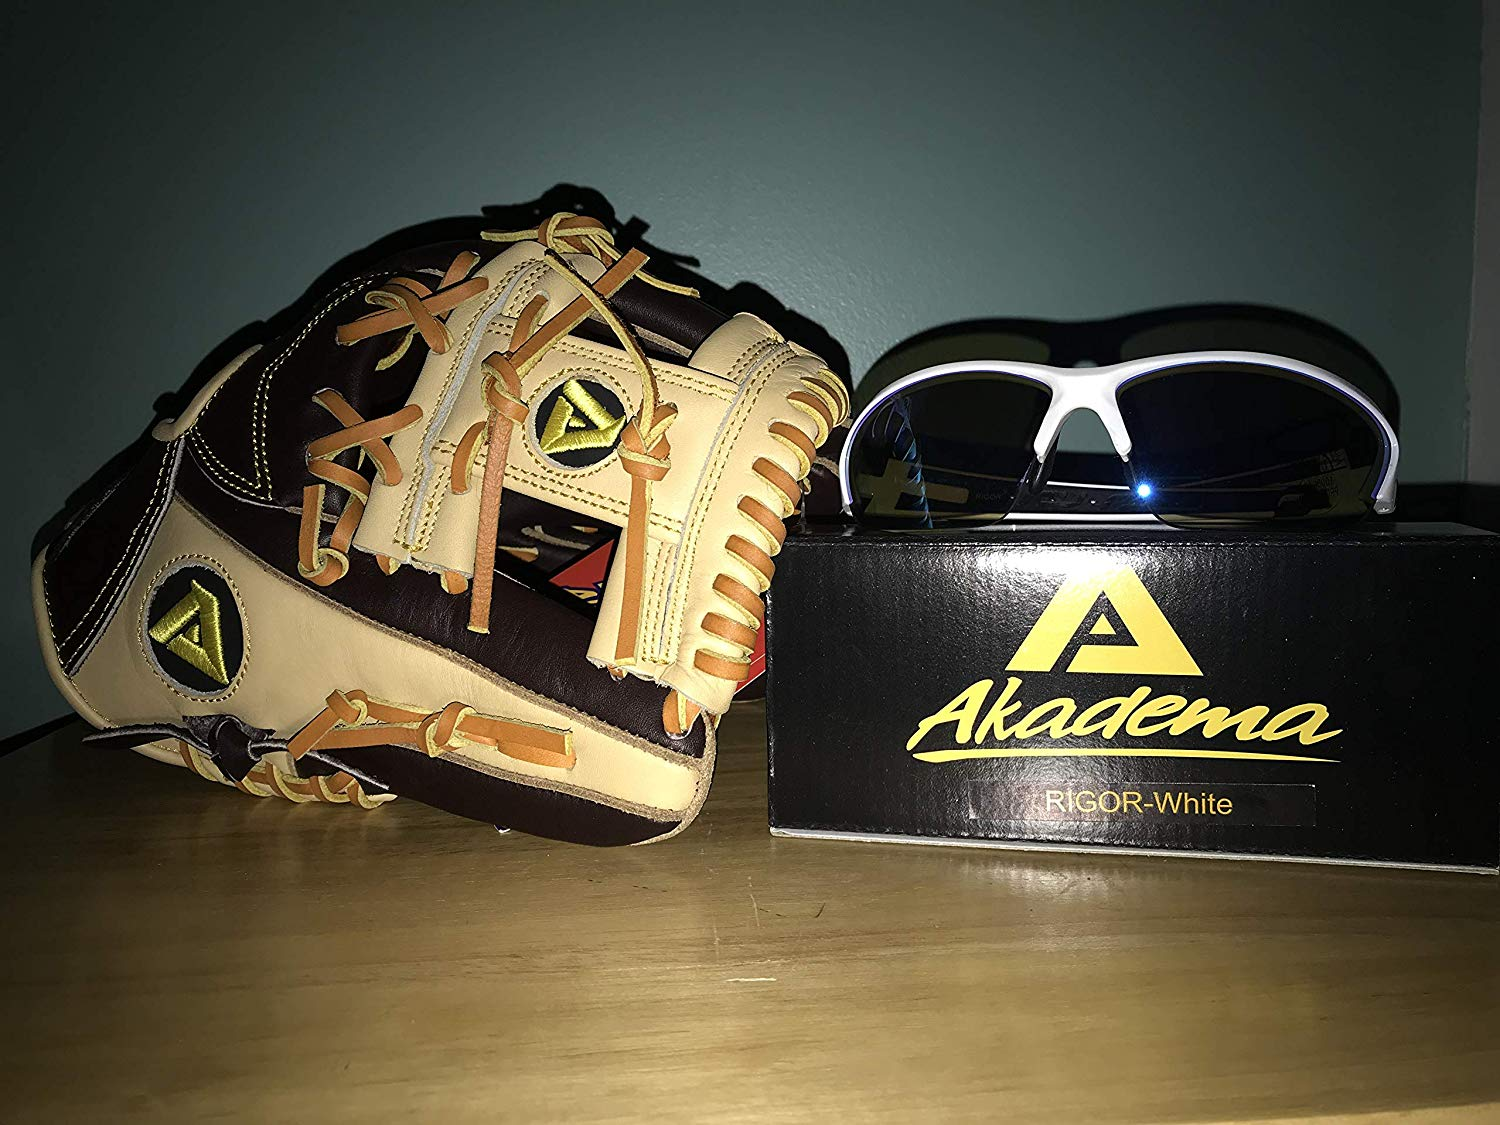 642b0a54ca10 Get Quotations · Akadema Baseball Glove and Sunglasses Bundle for Youth and  Adult. Baseball Mitt Bundle Includes Torino